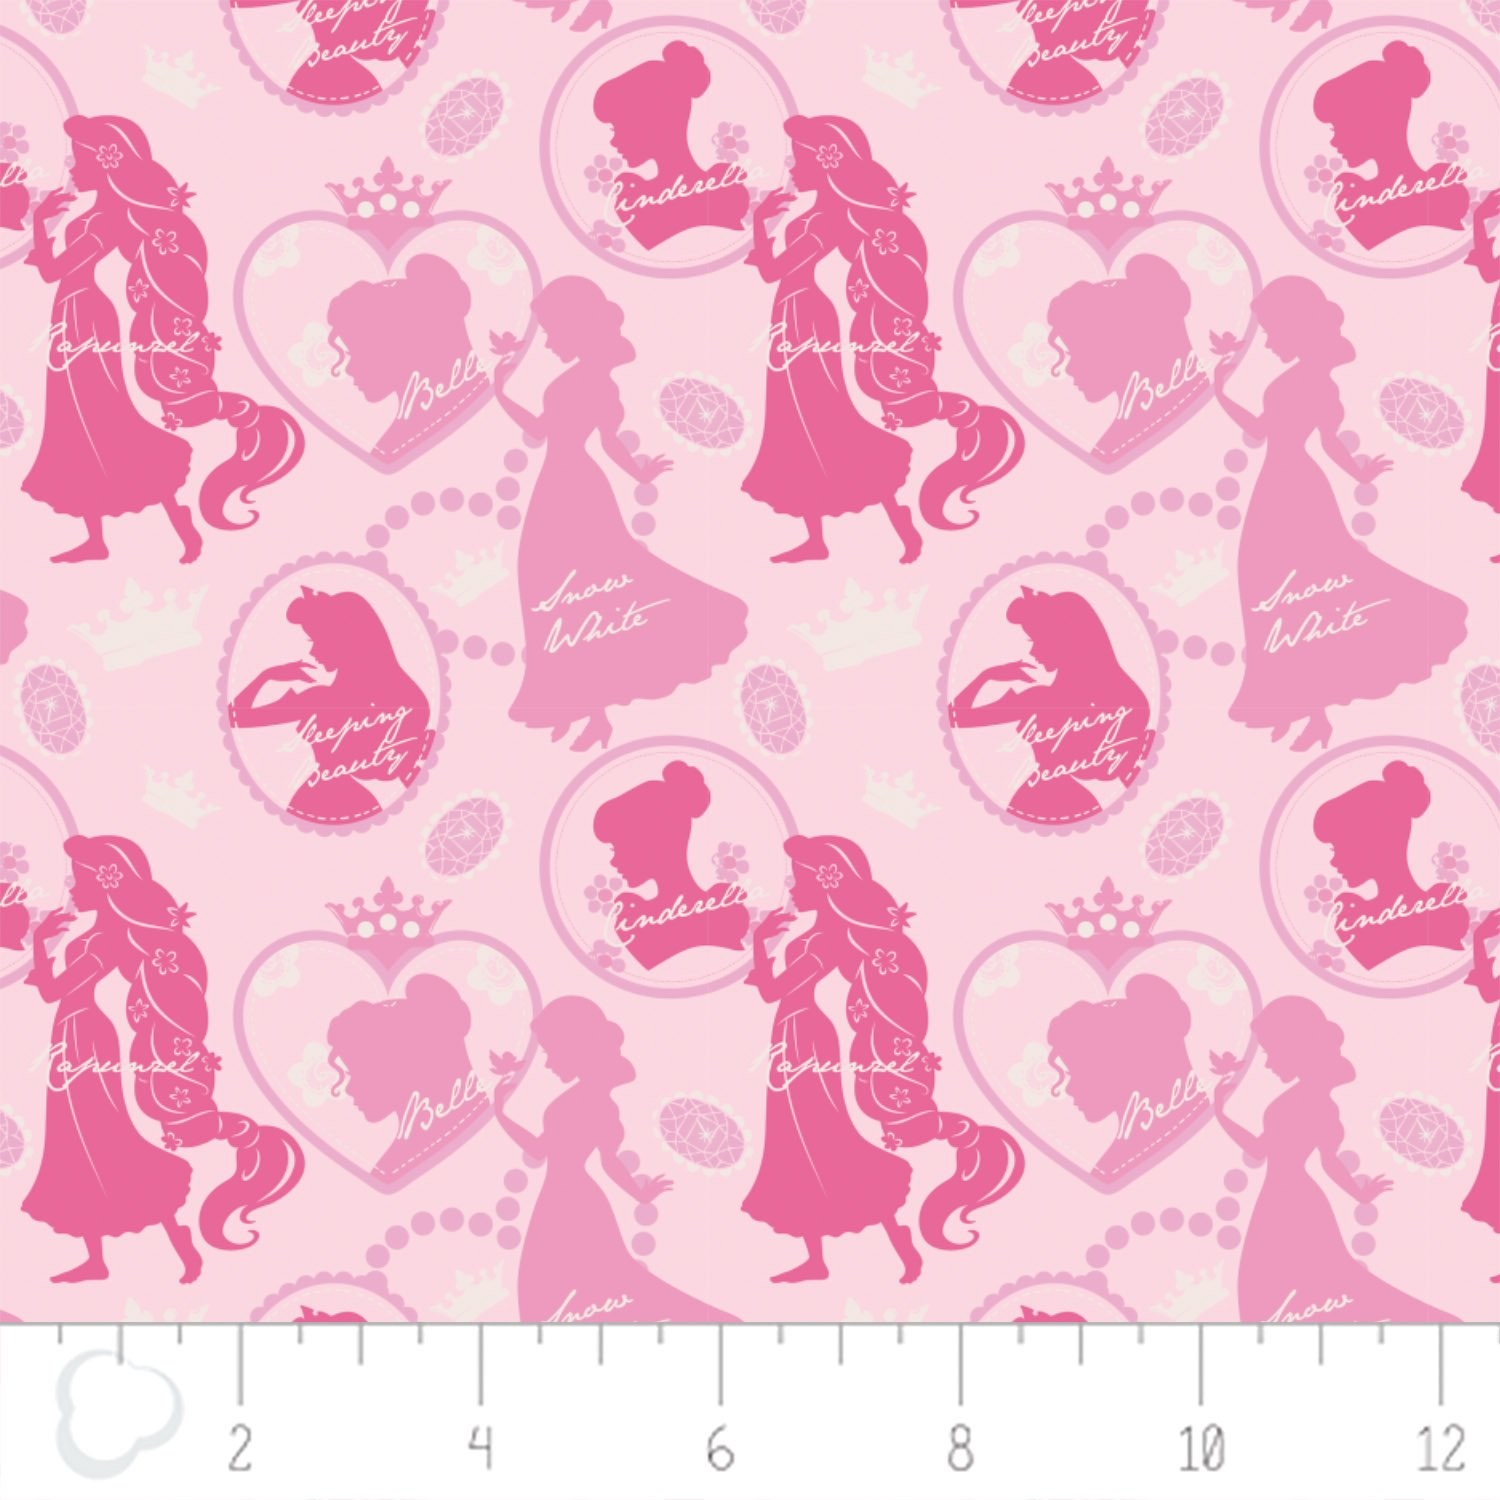 Camelot - Disney Princesses - Silhouette in Cotton Candy